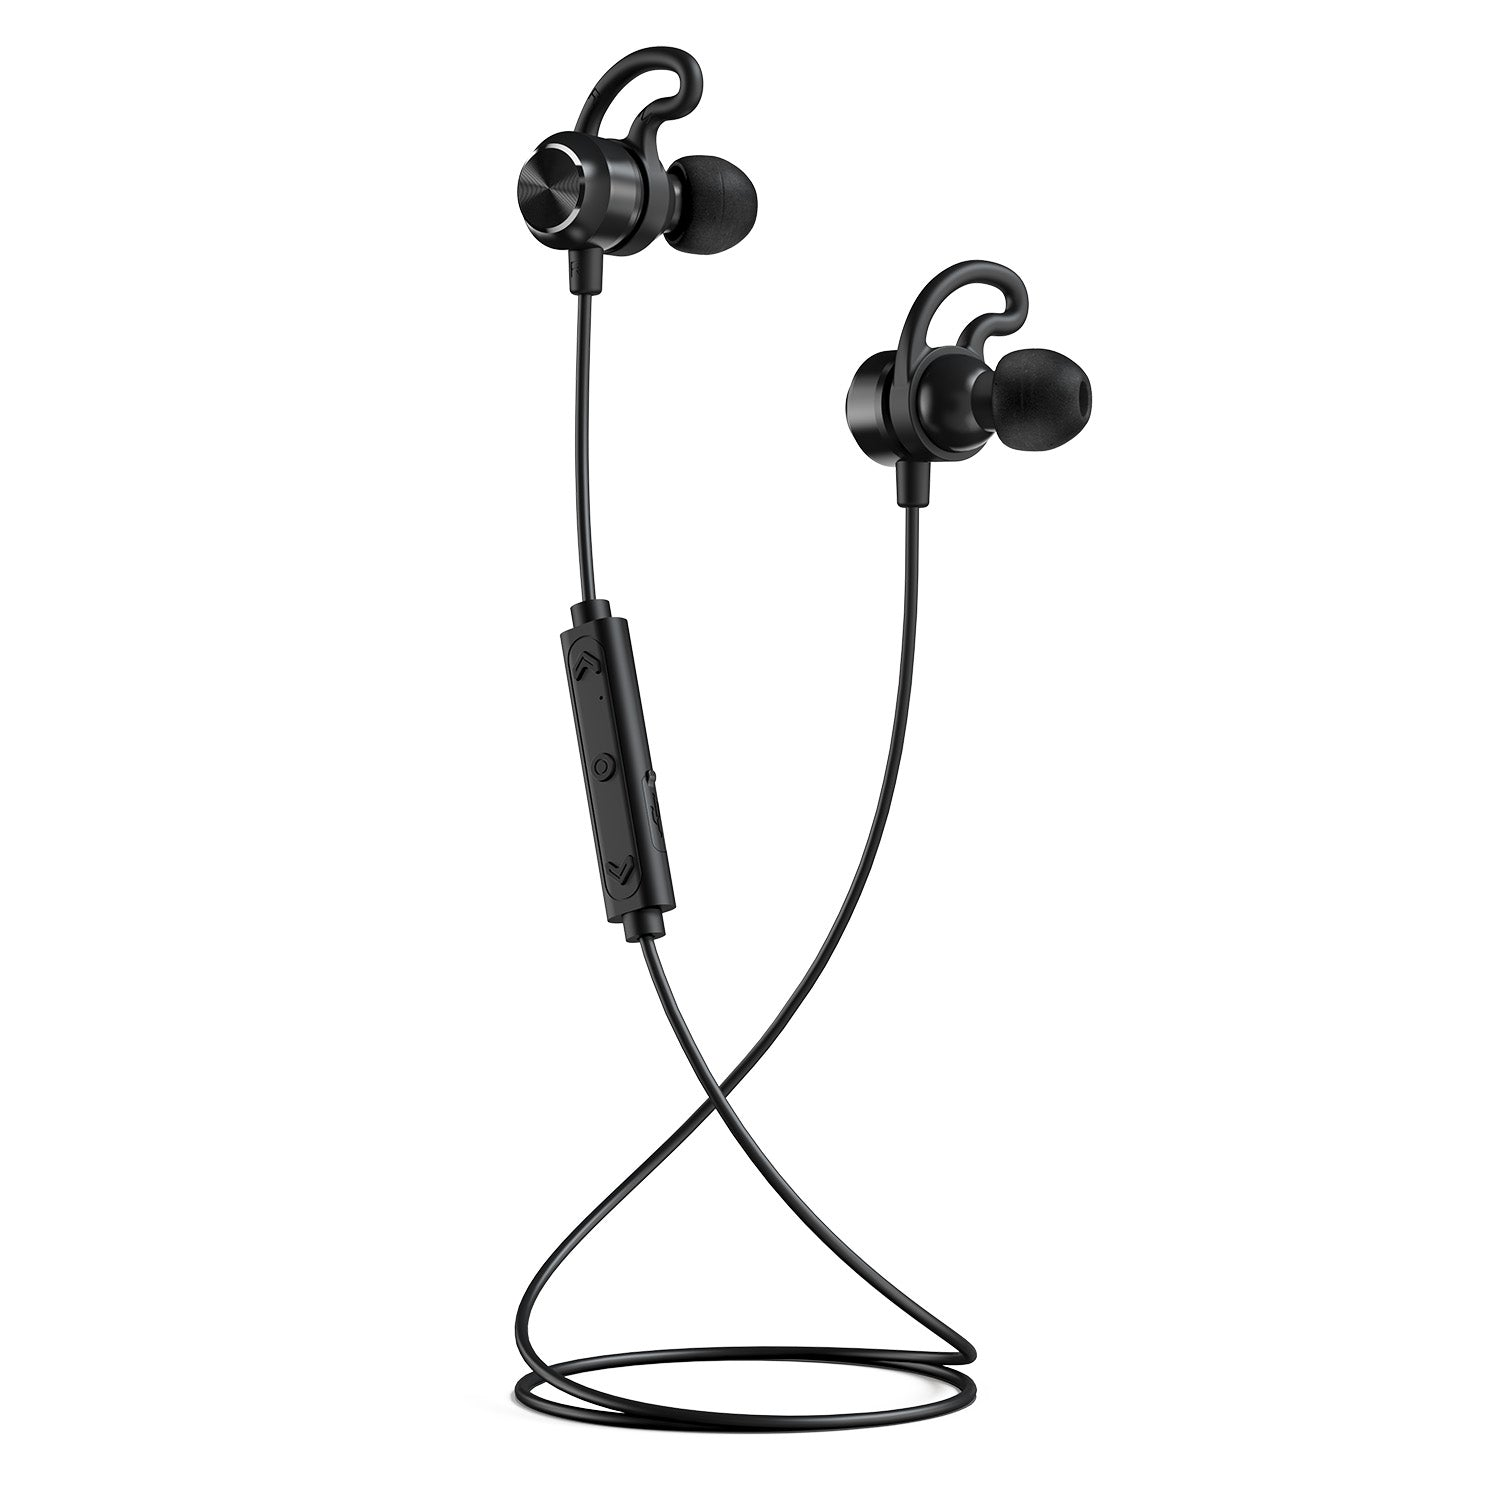 Phaiser BHS-770 Bluetooth Headphones